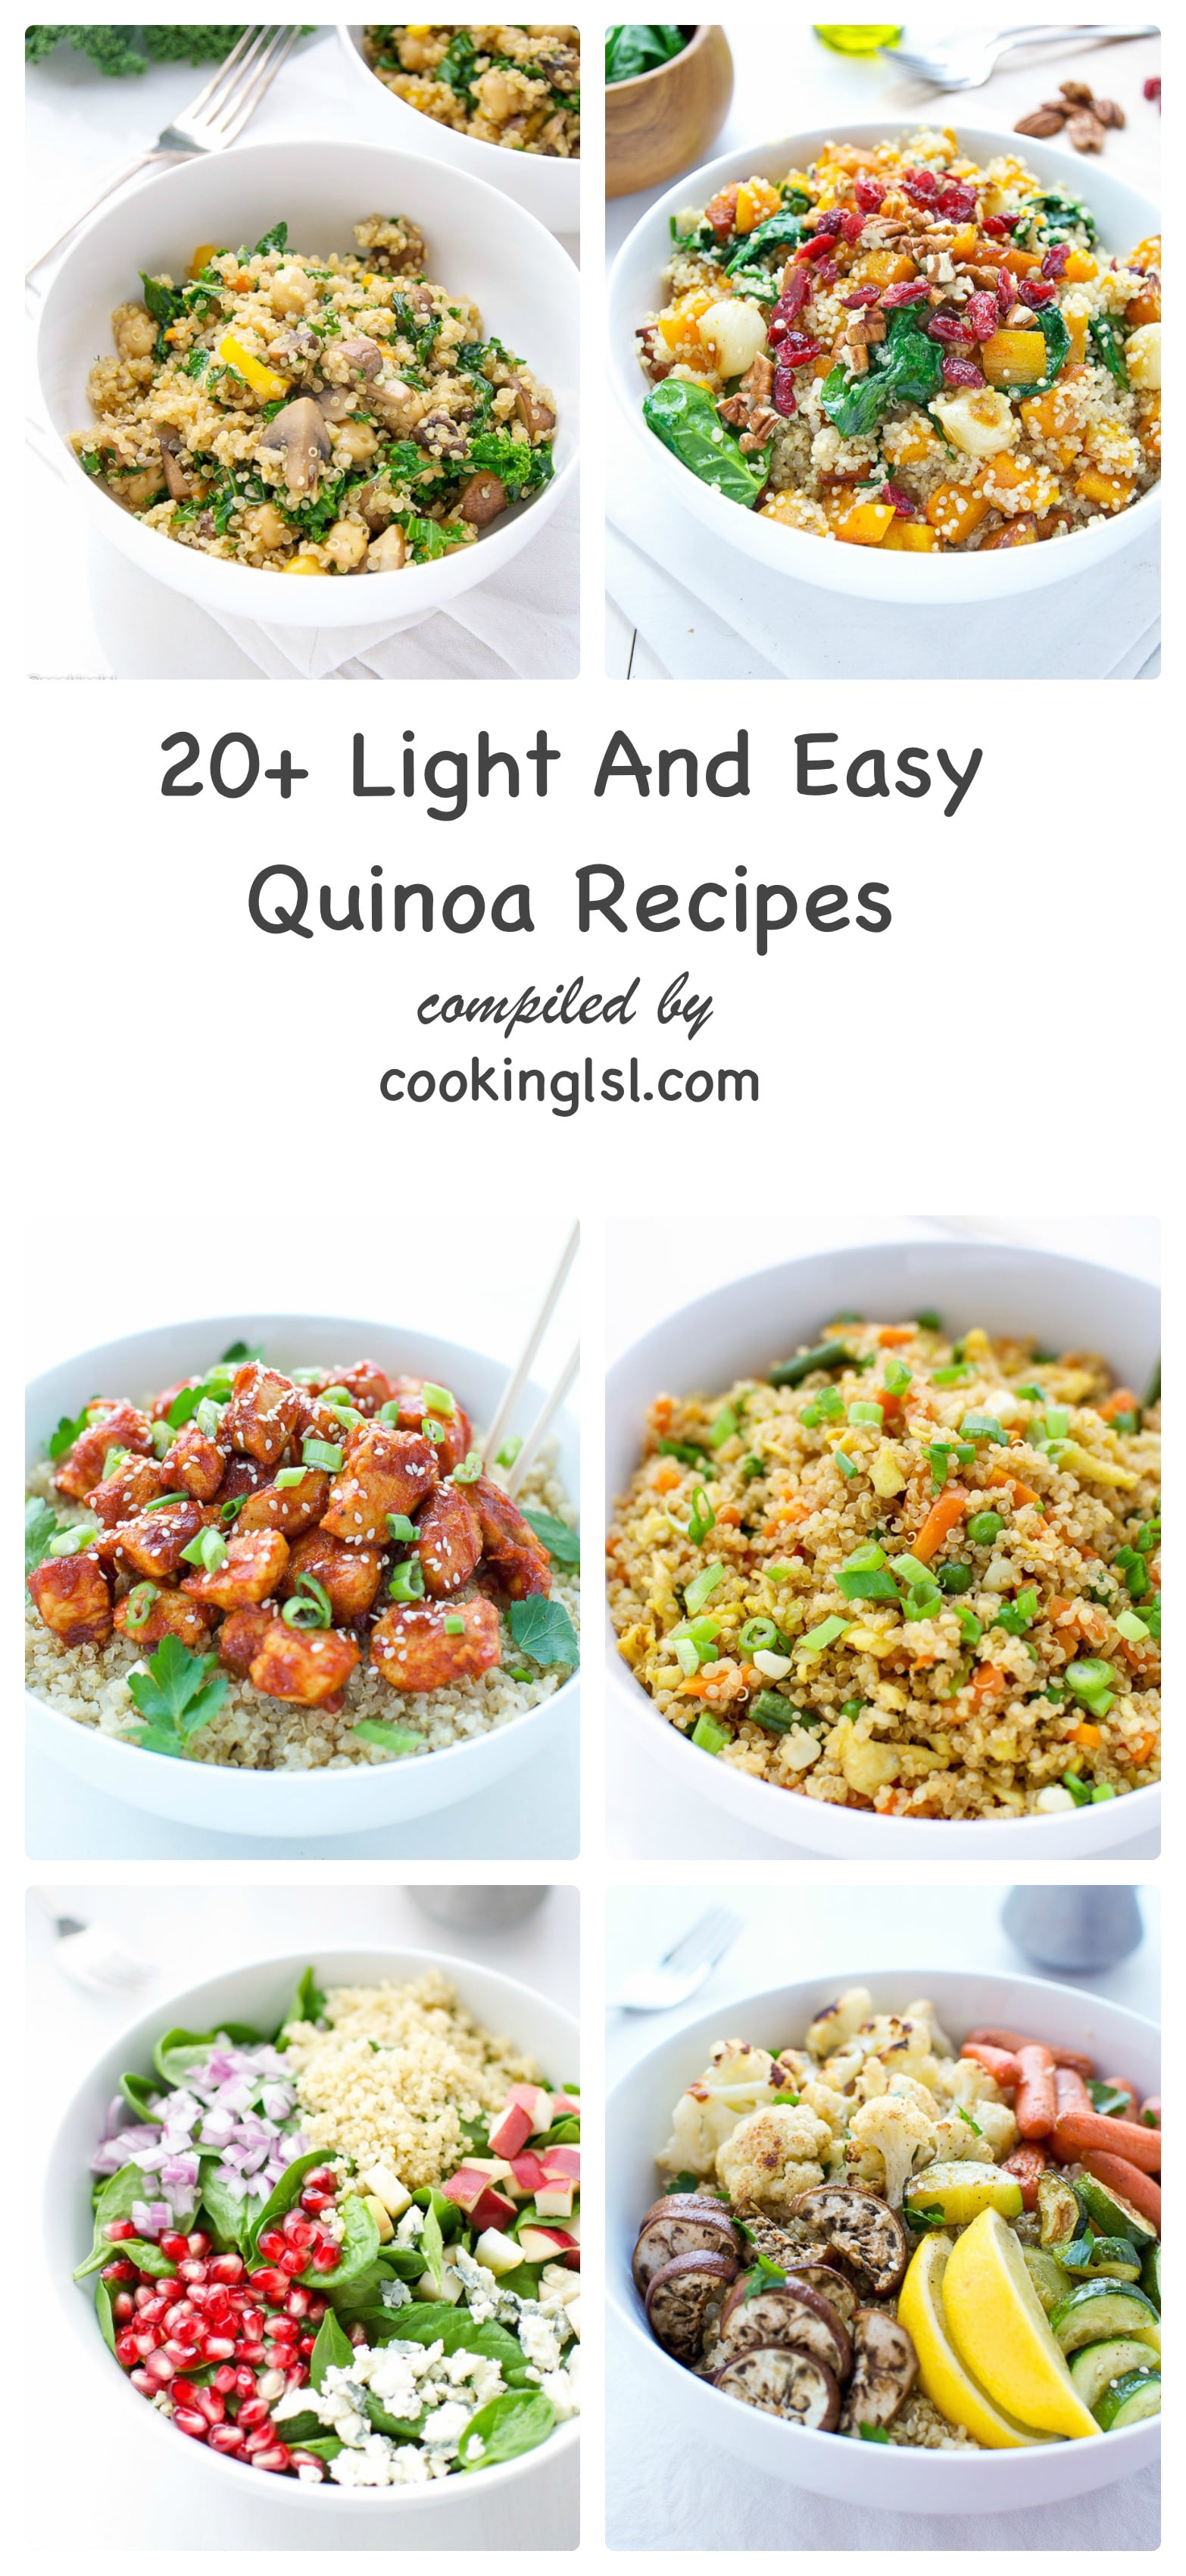 Light and easy recipes